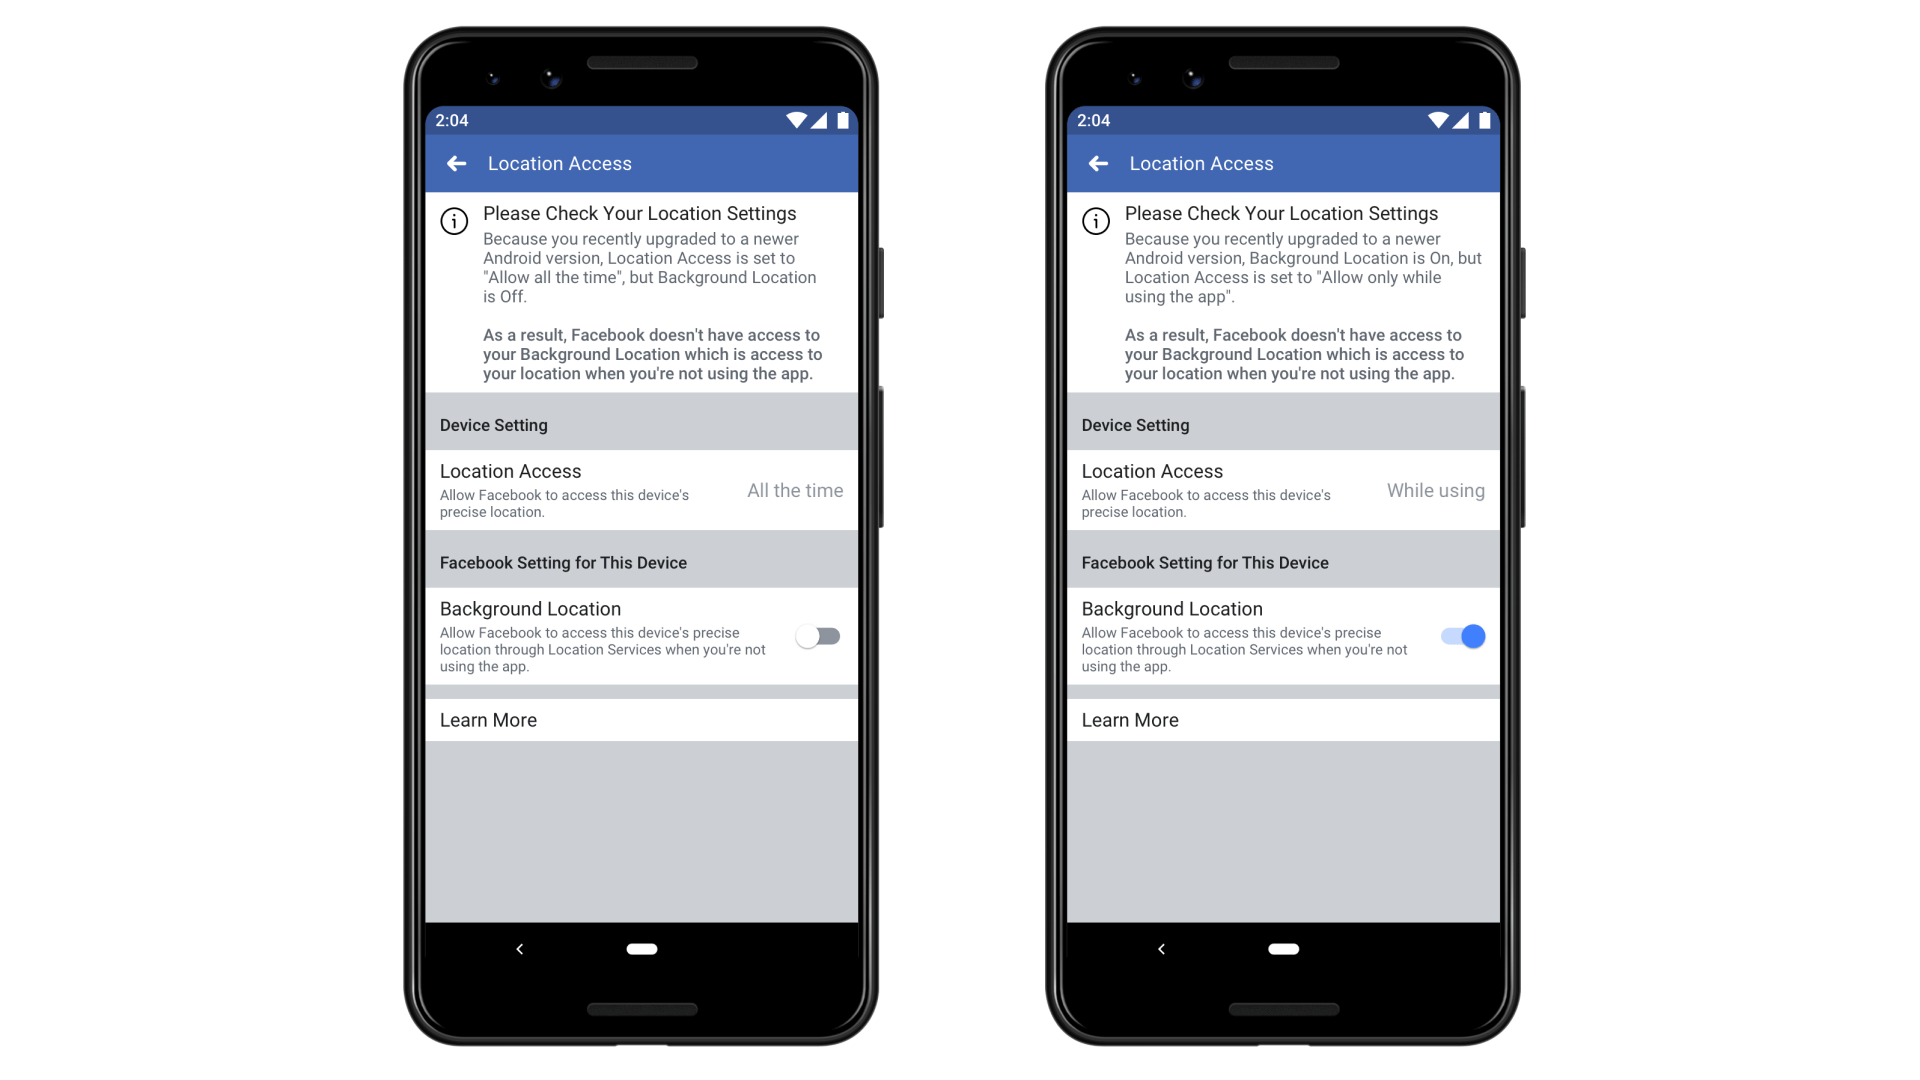 Facebook changes how it handles user location data settings in response to Android, iOS updates